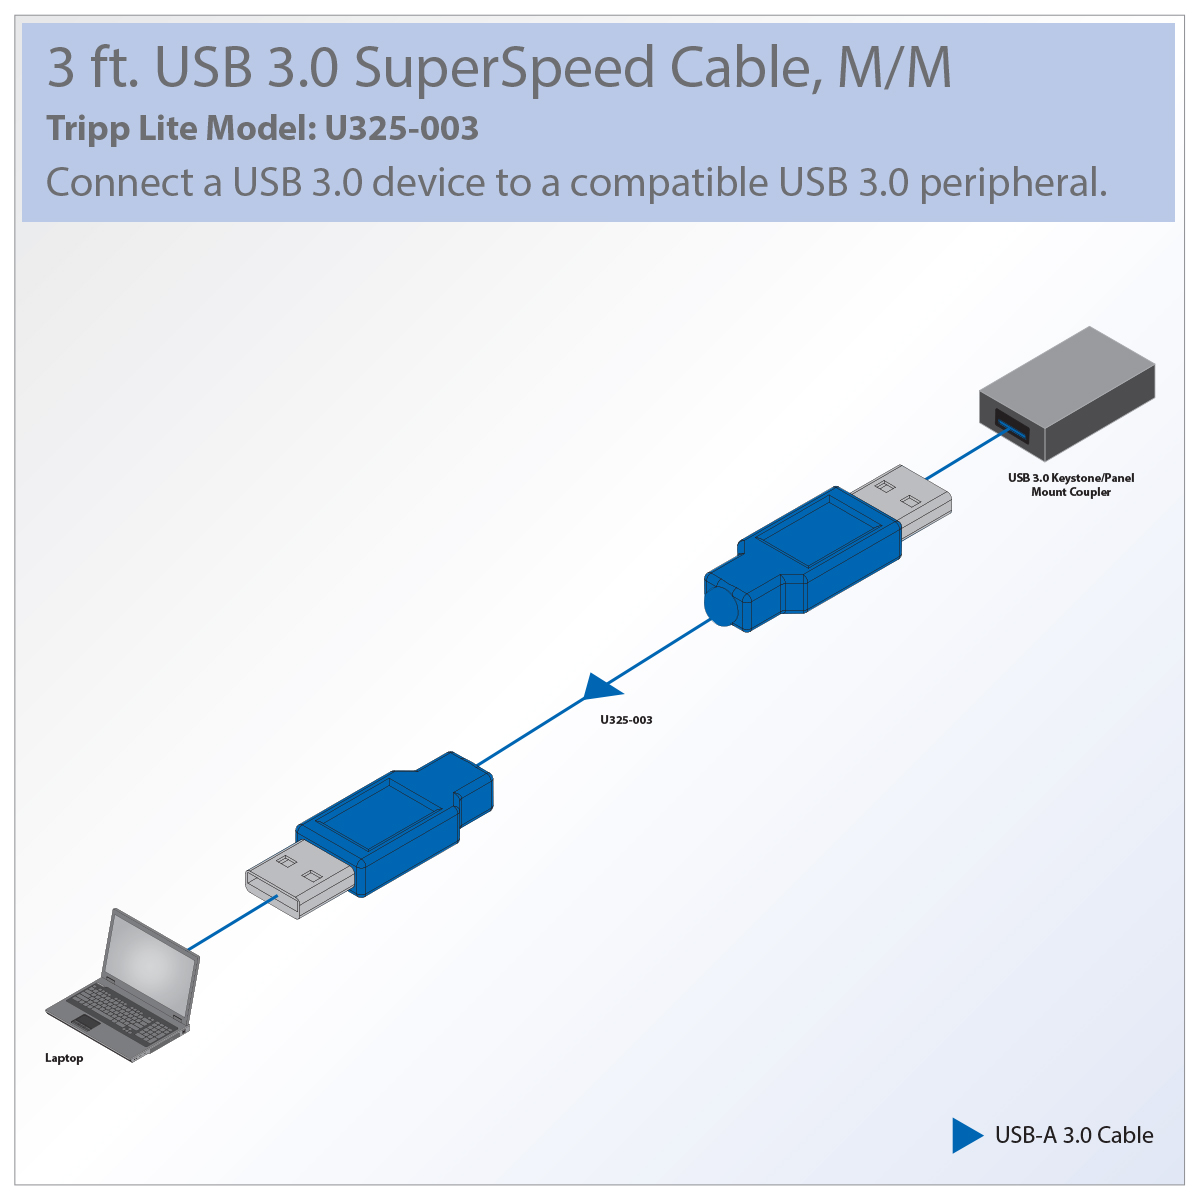 Tripp Lite USB 3 0 SuperSpeed A/A Cable for U325 Keystone Mount Couplers 3'